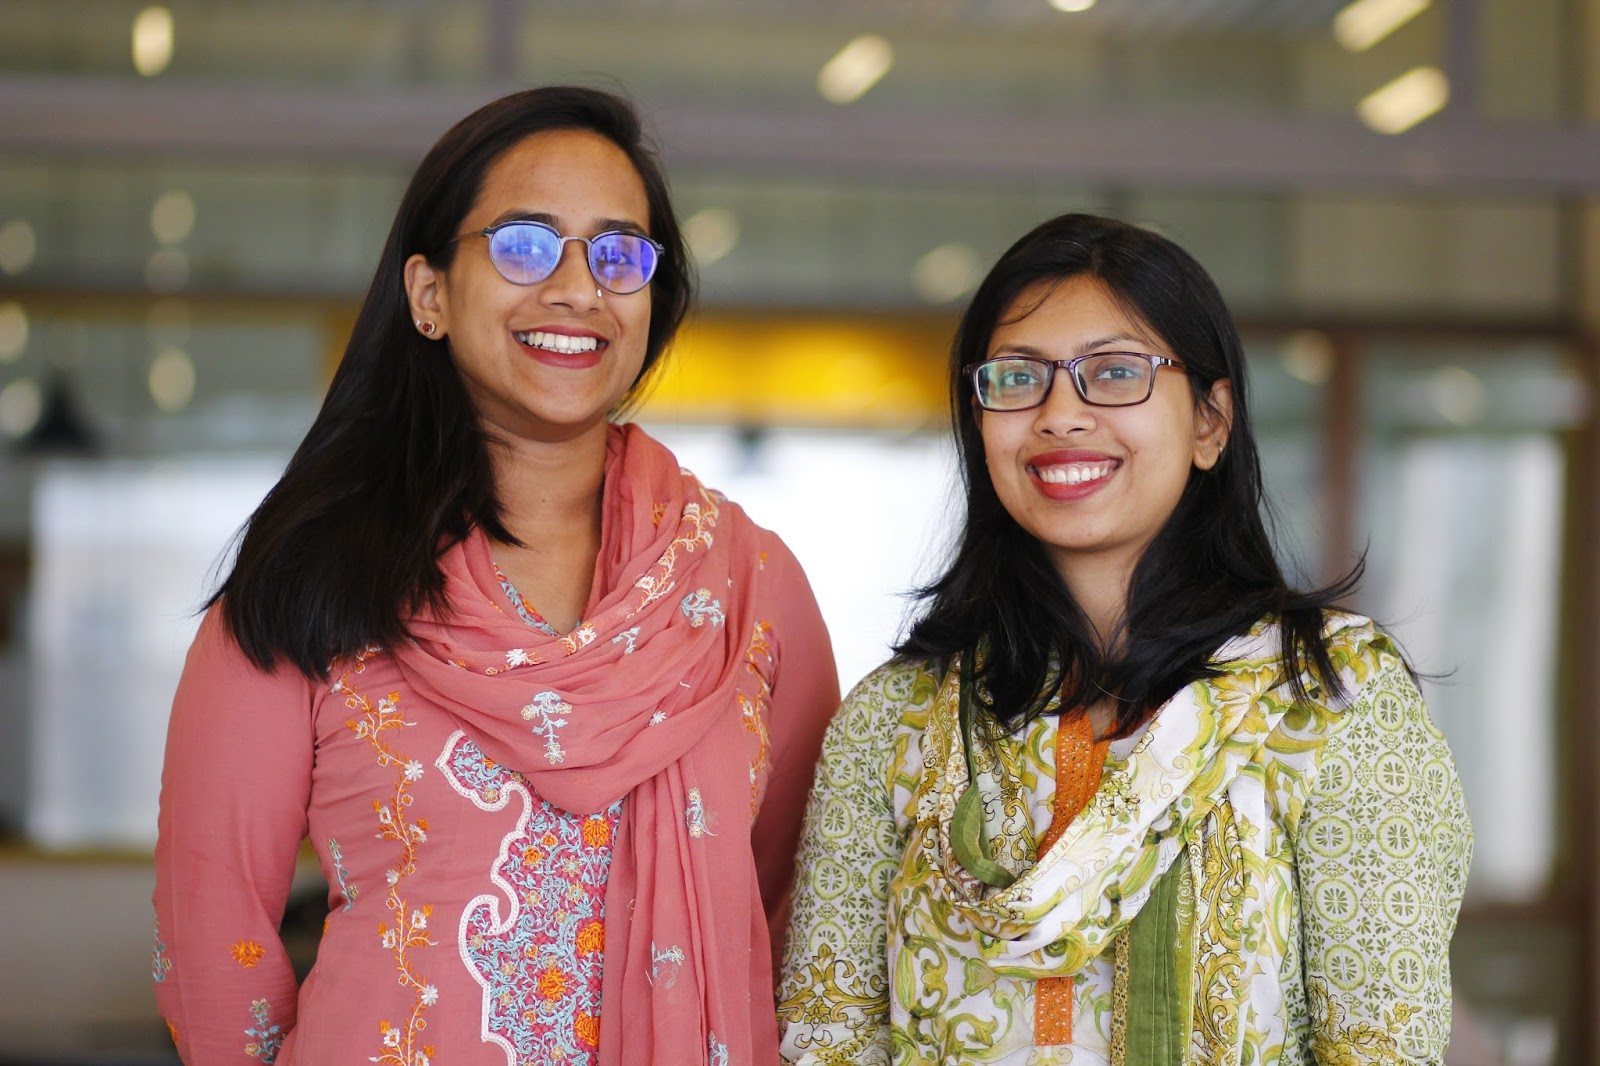 Moar Founders. Nahid Sharmin and Nabila Nowrin